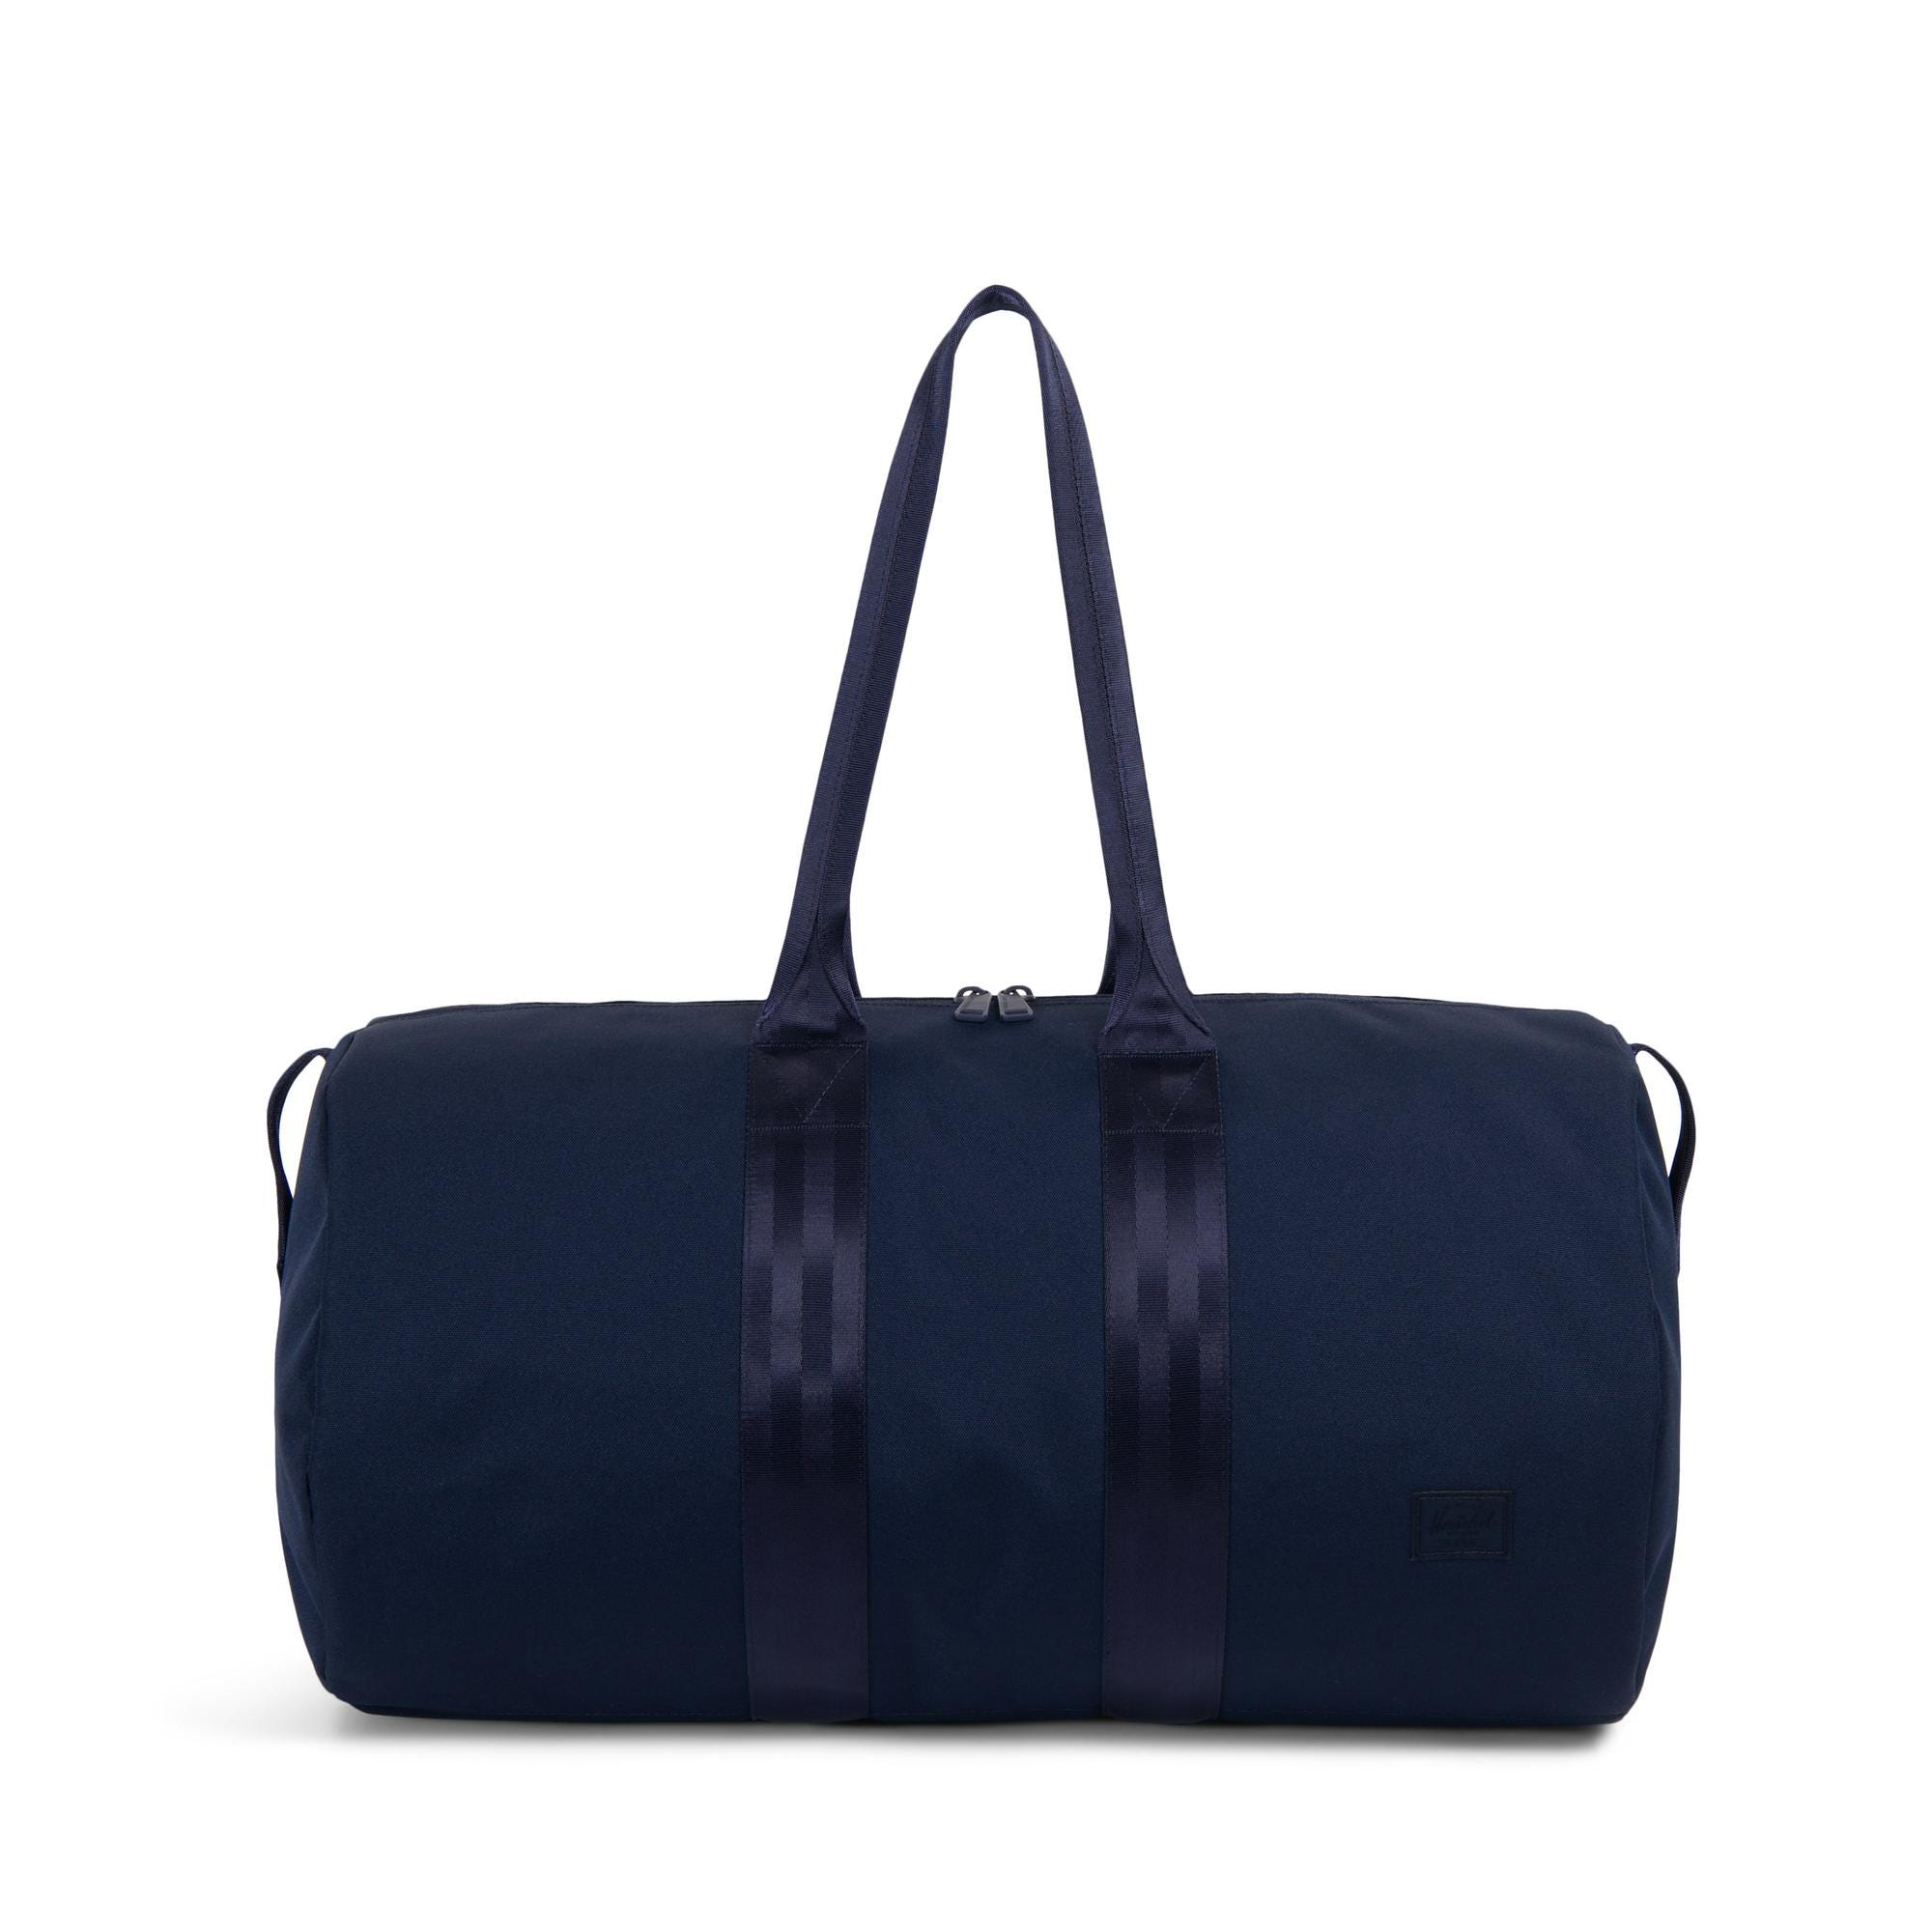 da803e1589 Best Weekender Bags For Women To Travel In Style 2019